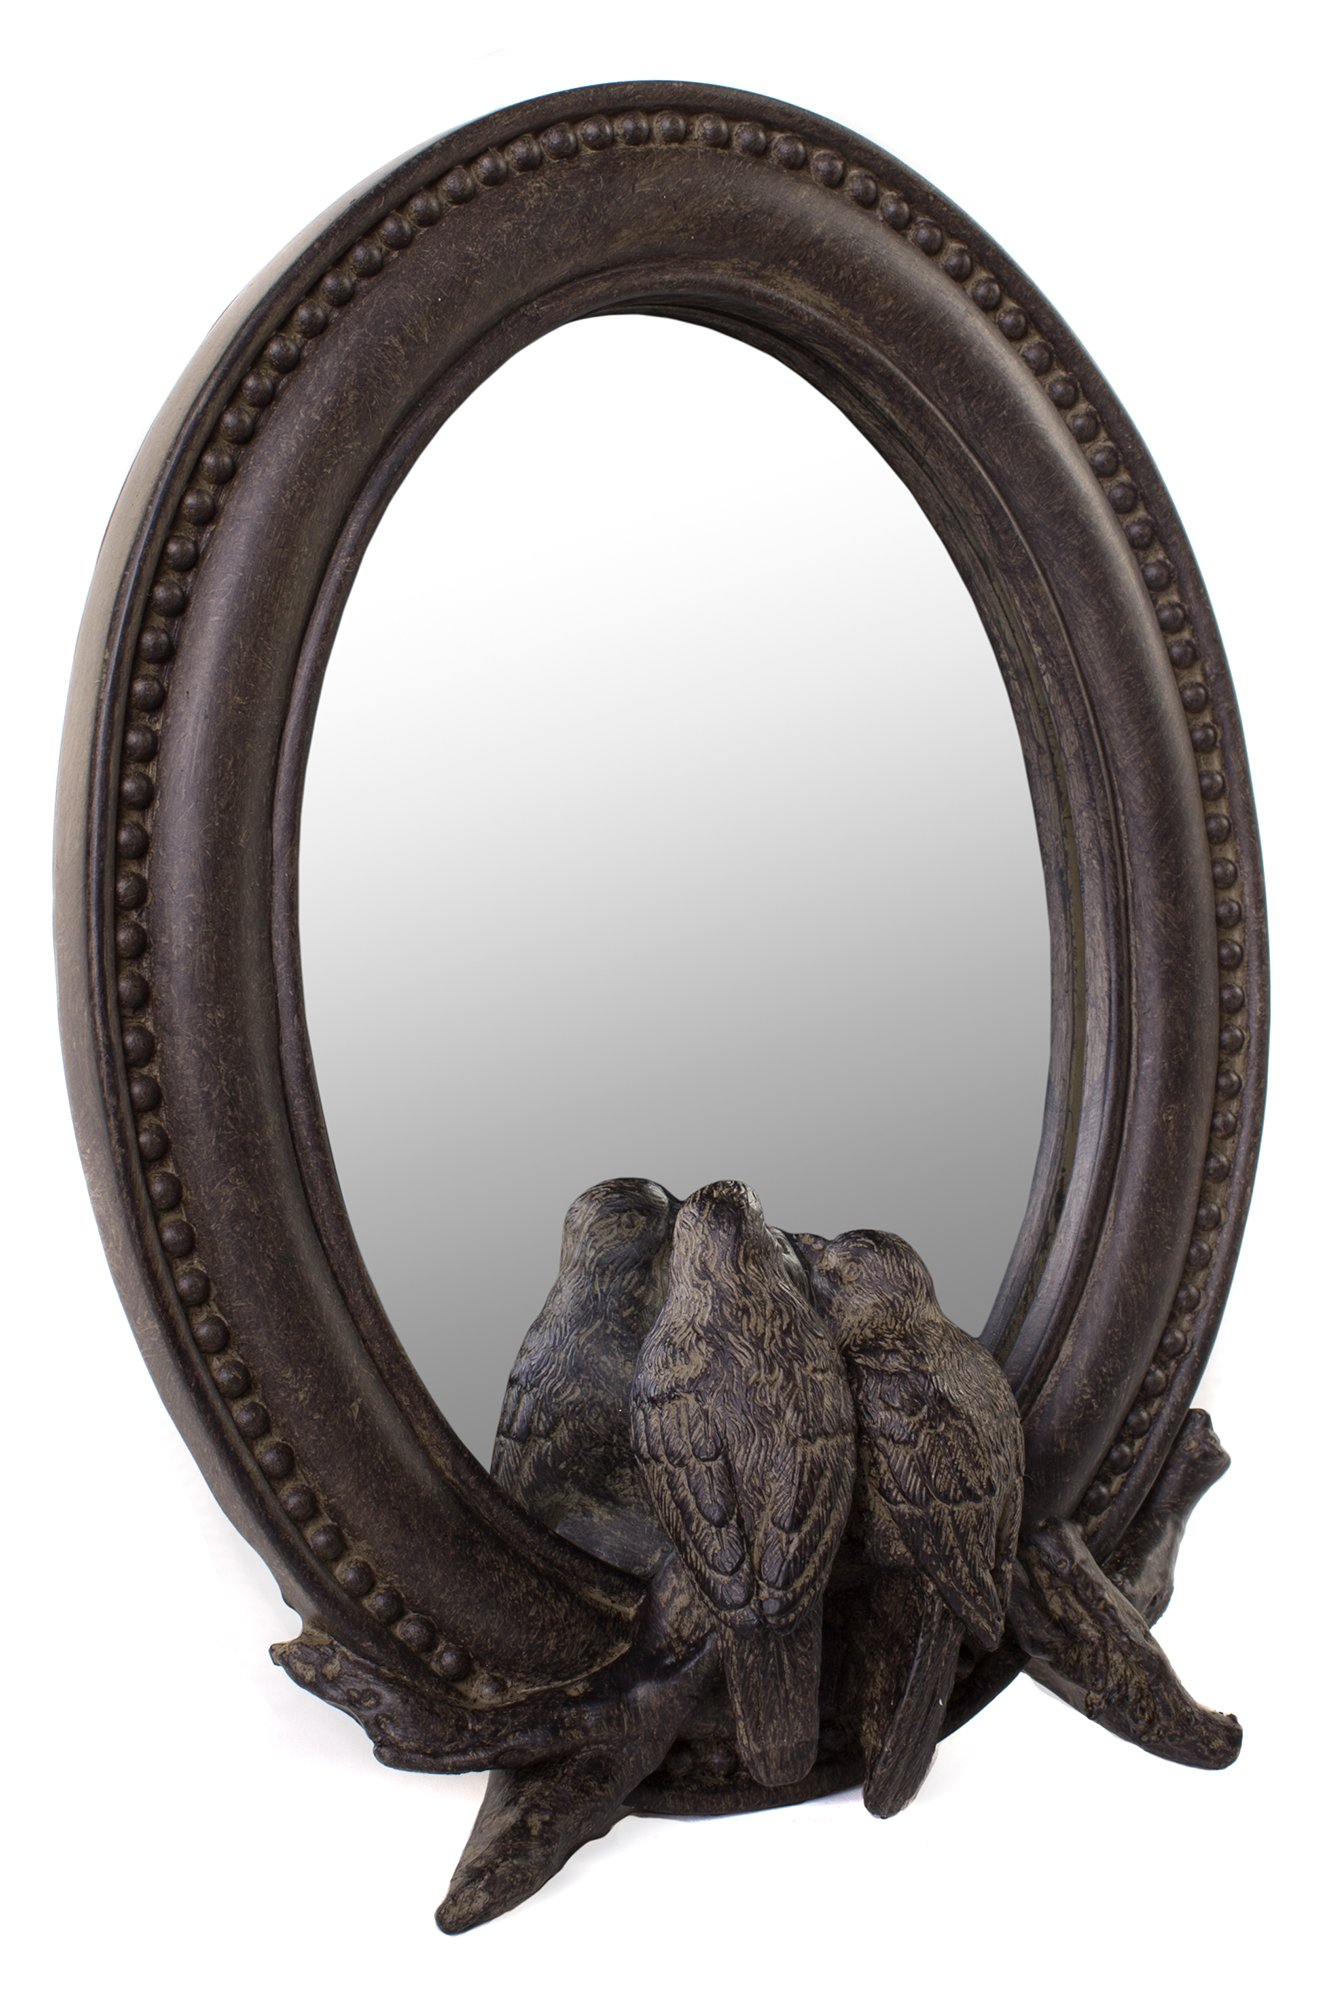 Farmhouse Oval Framed Mirror with Birds in Dark Brown